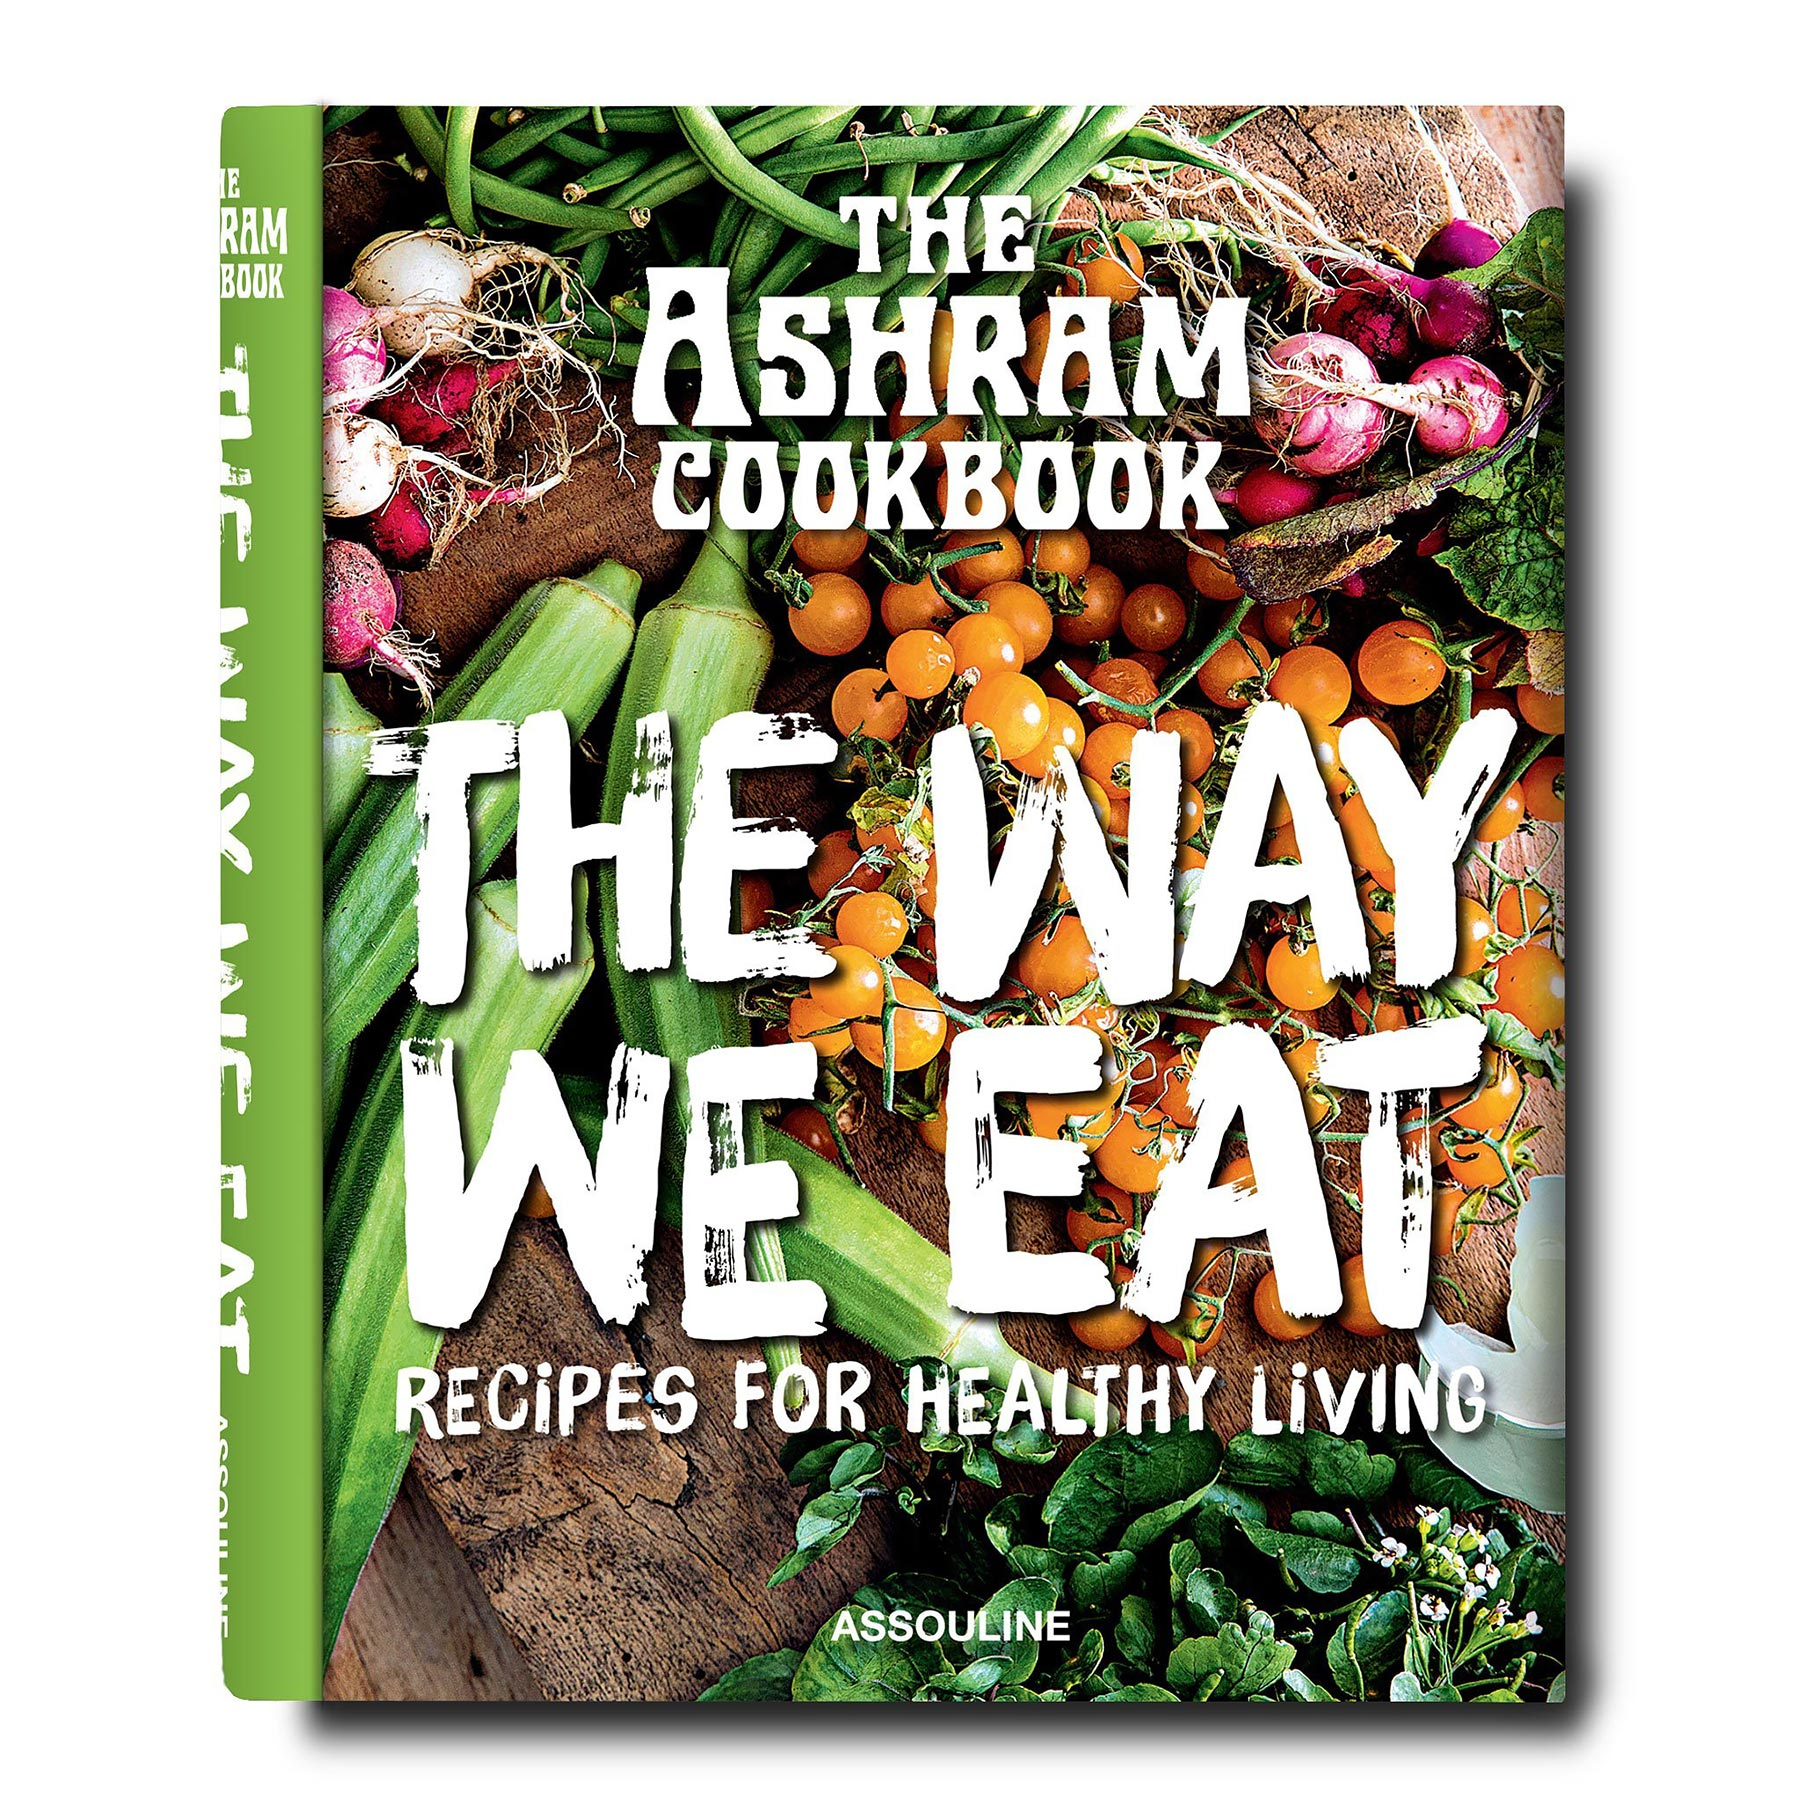 The Ashram Cookbook, by Catharina Hedberg